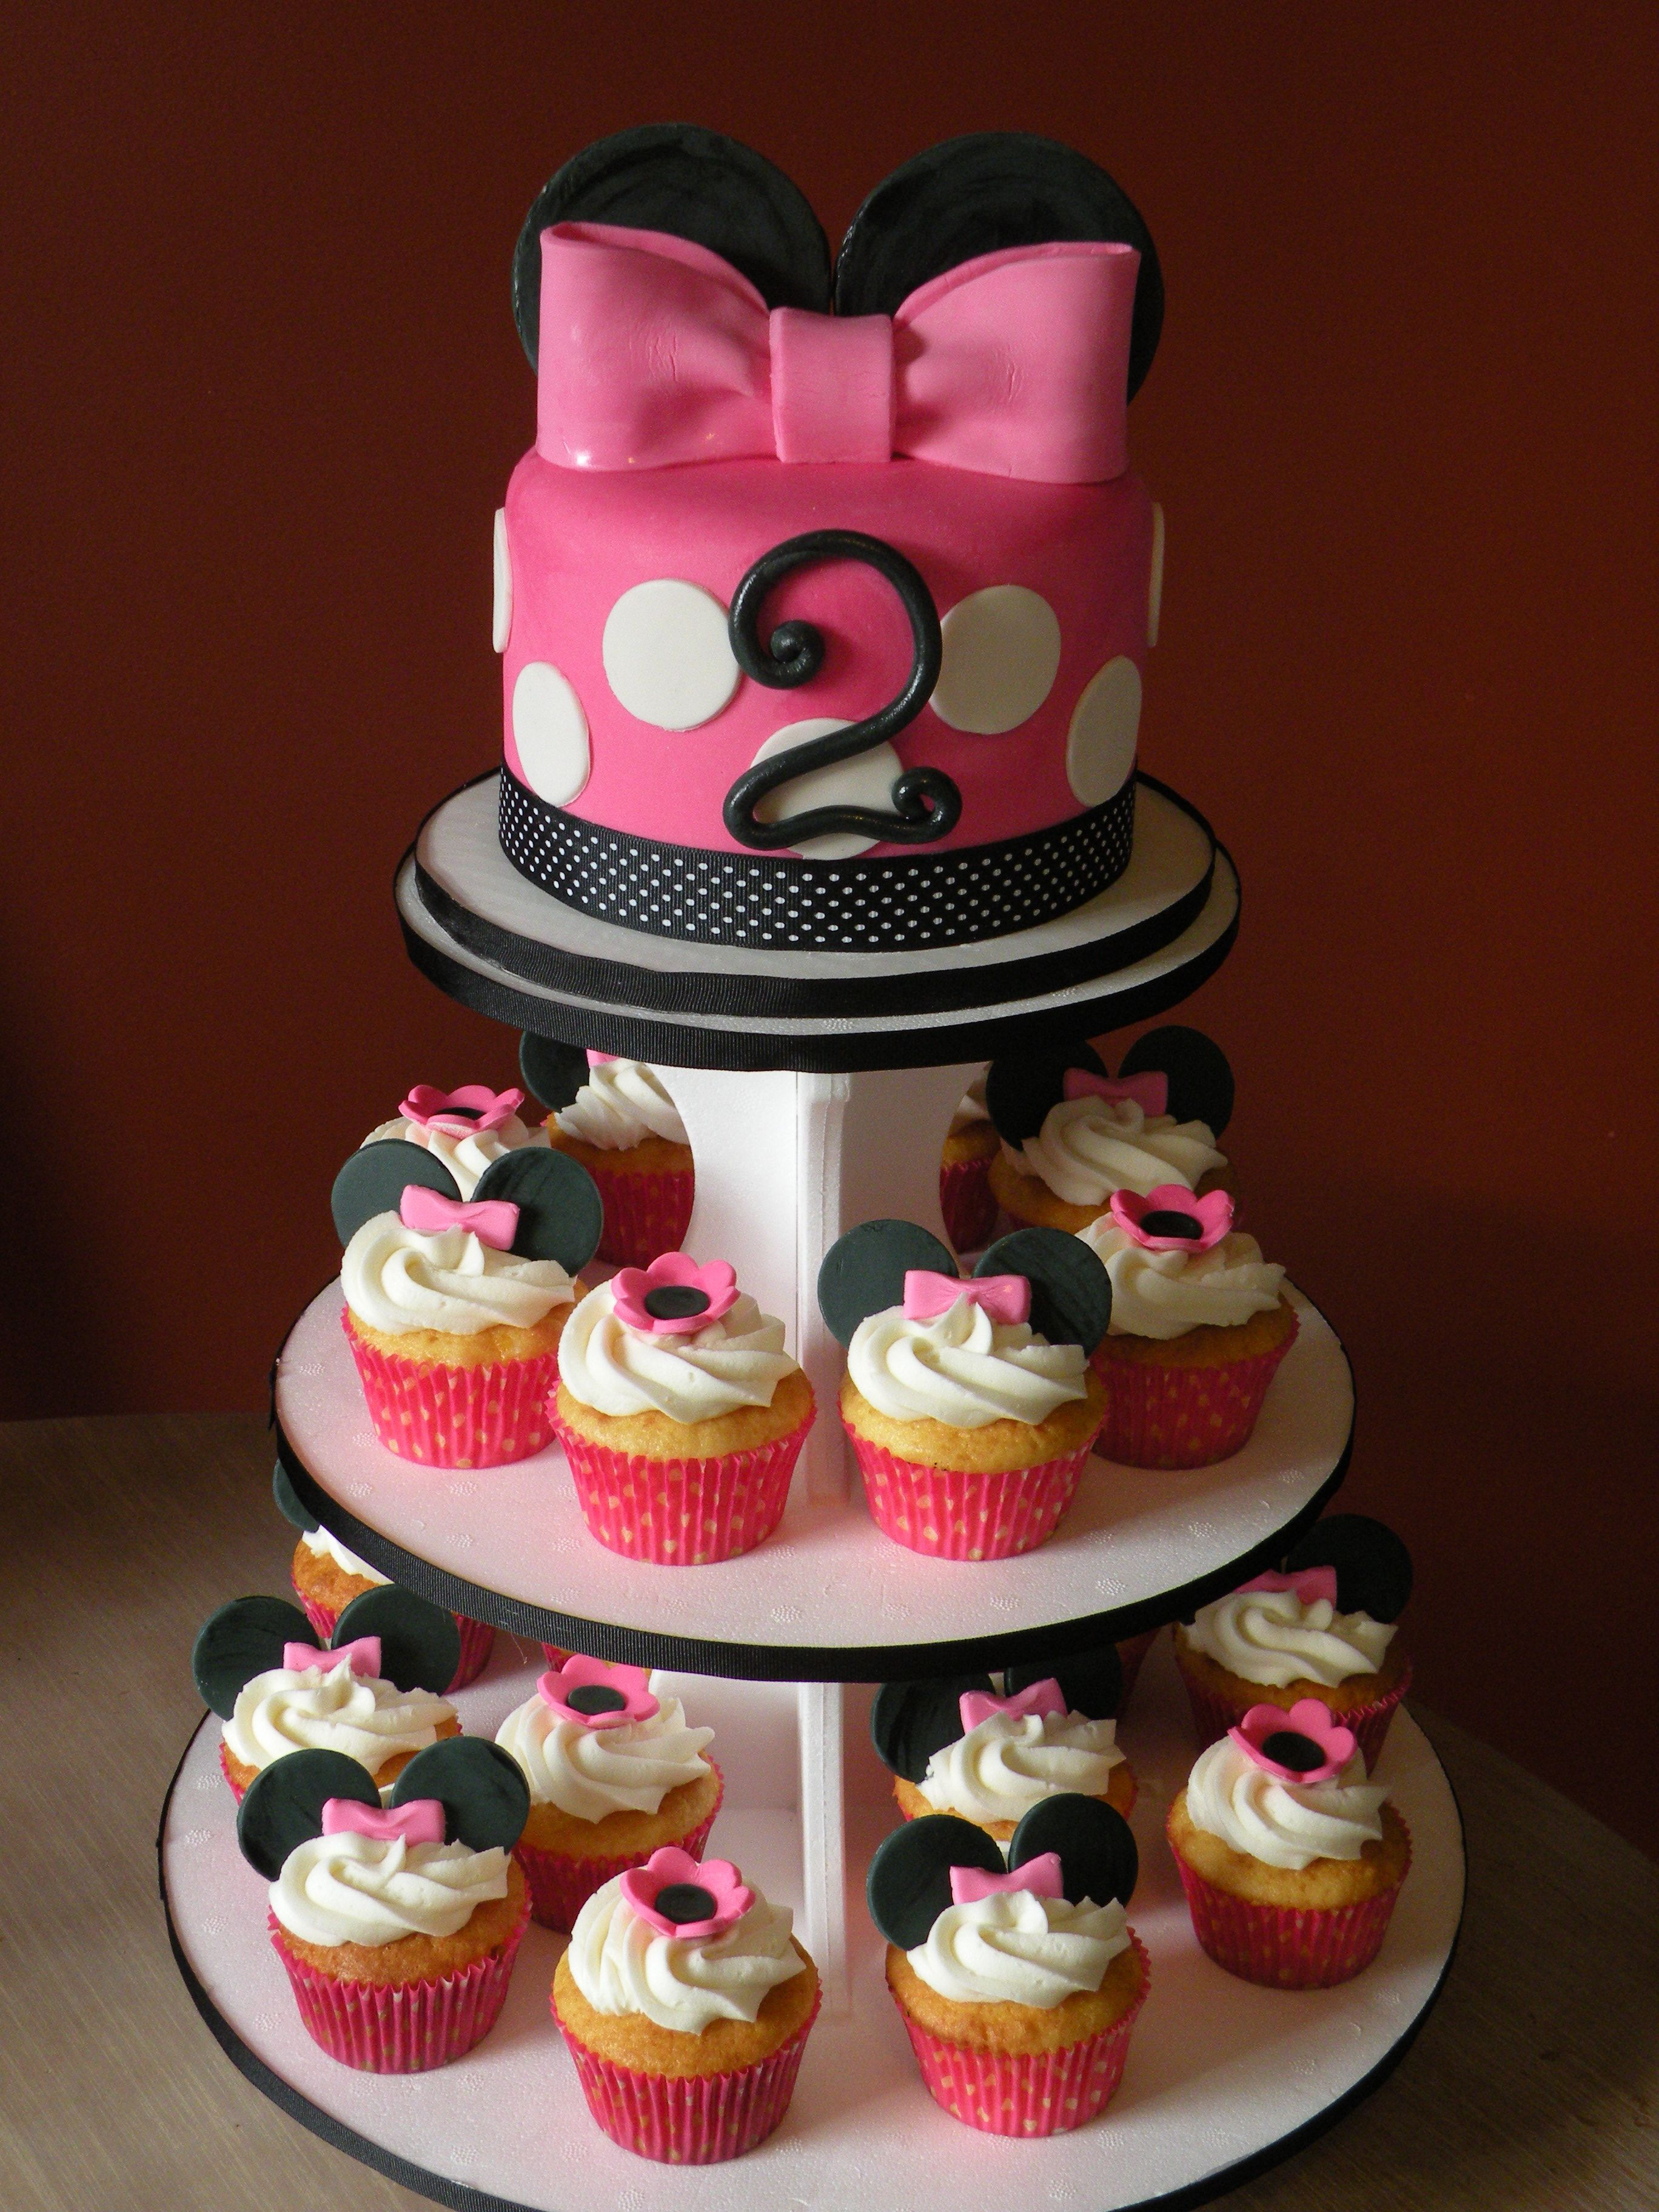 Incredible 2Nd Birthday Party Ideas Minnie Mouse Cake Cupcake Tower Funny Birthday Cards Online Inifofree Goldxyz